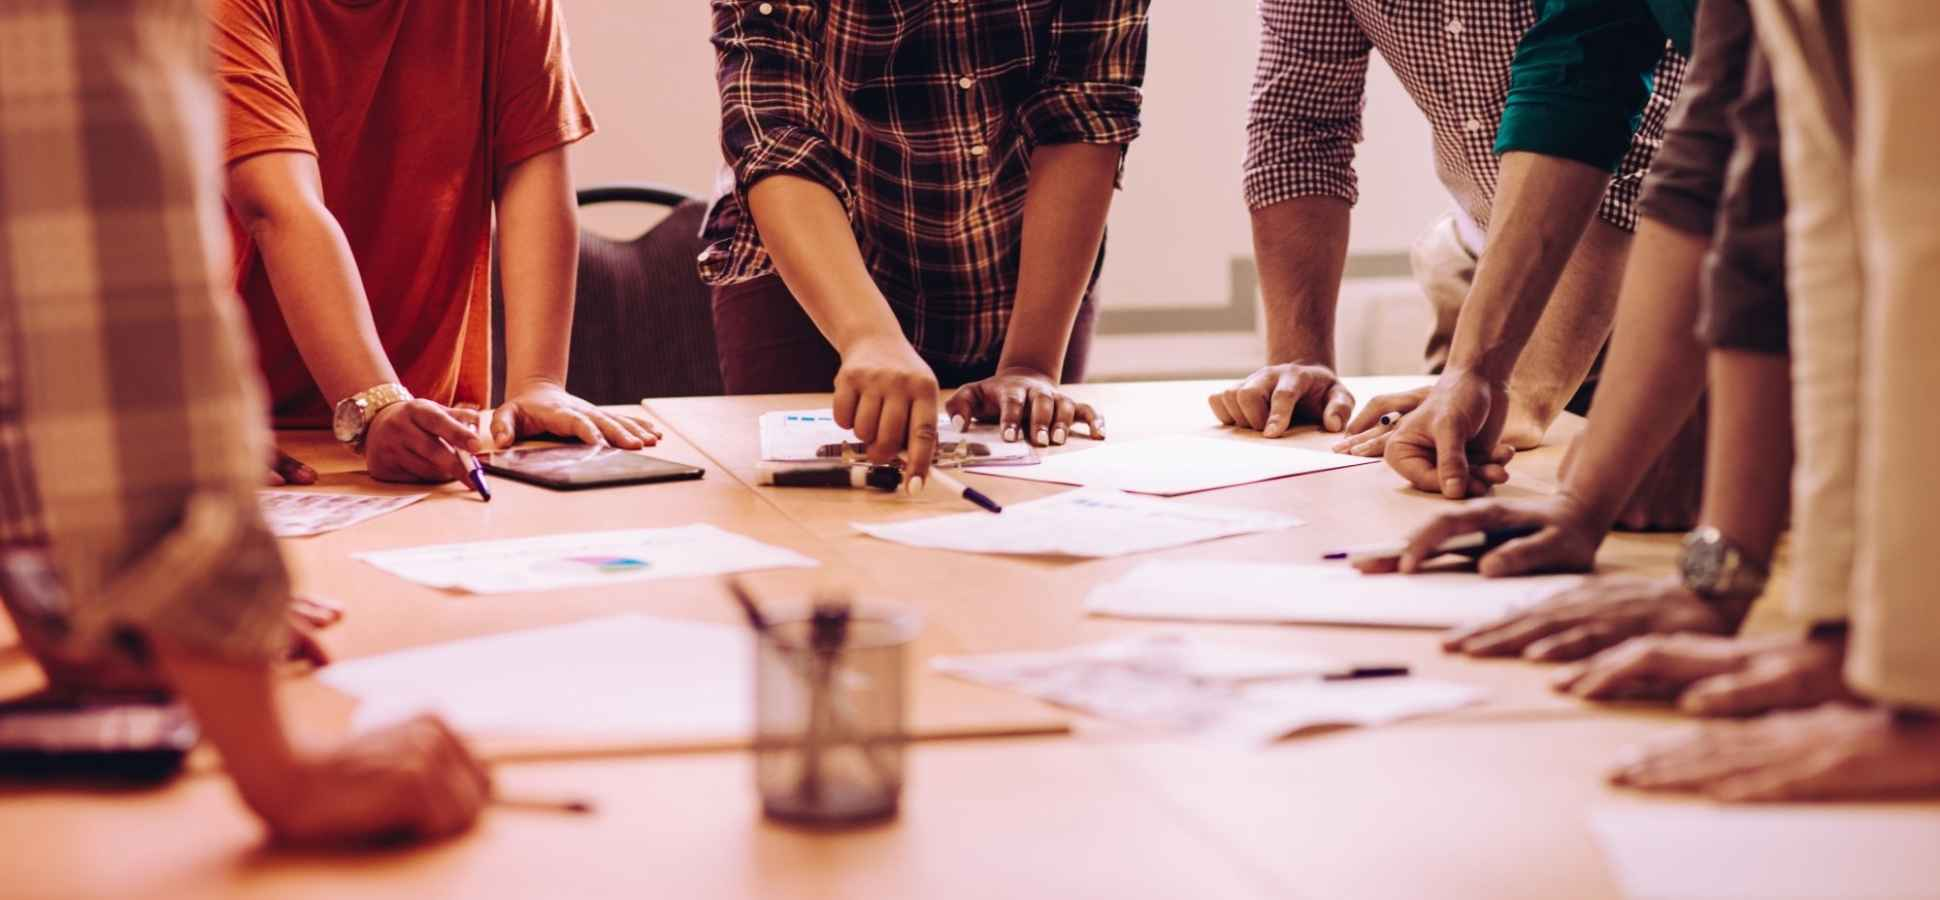 'Collaboration' Creates Mediocrity, Not Excellence, According to Science